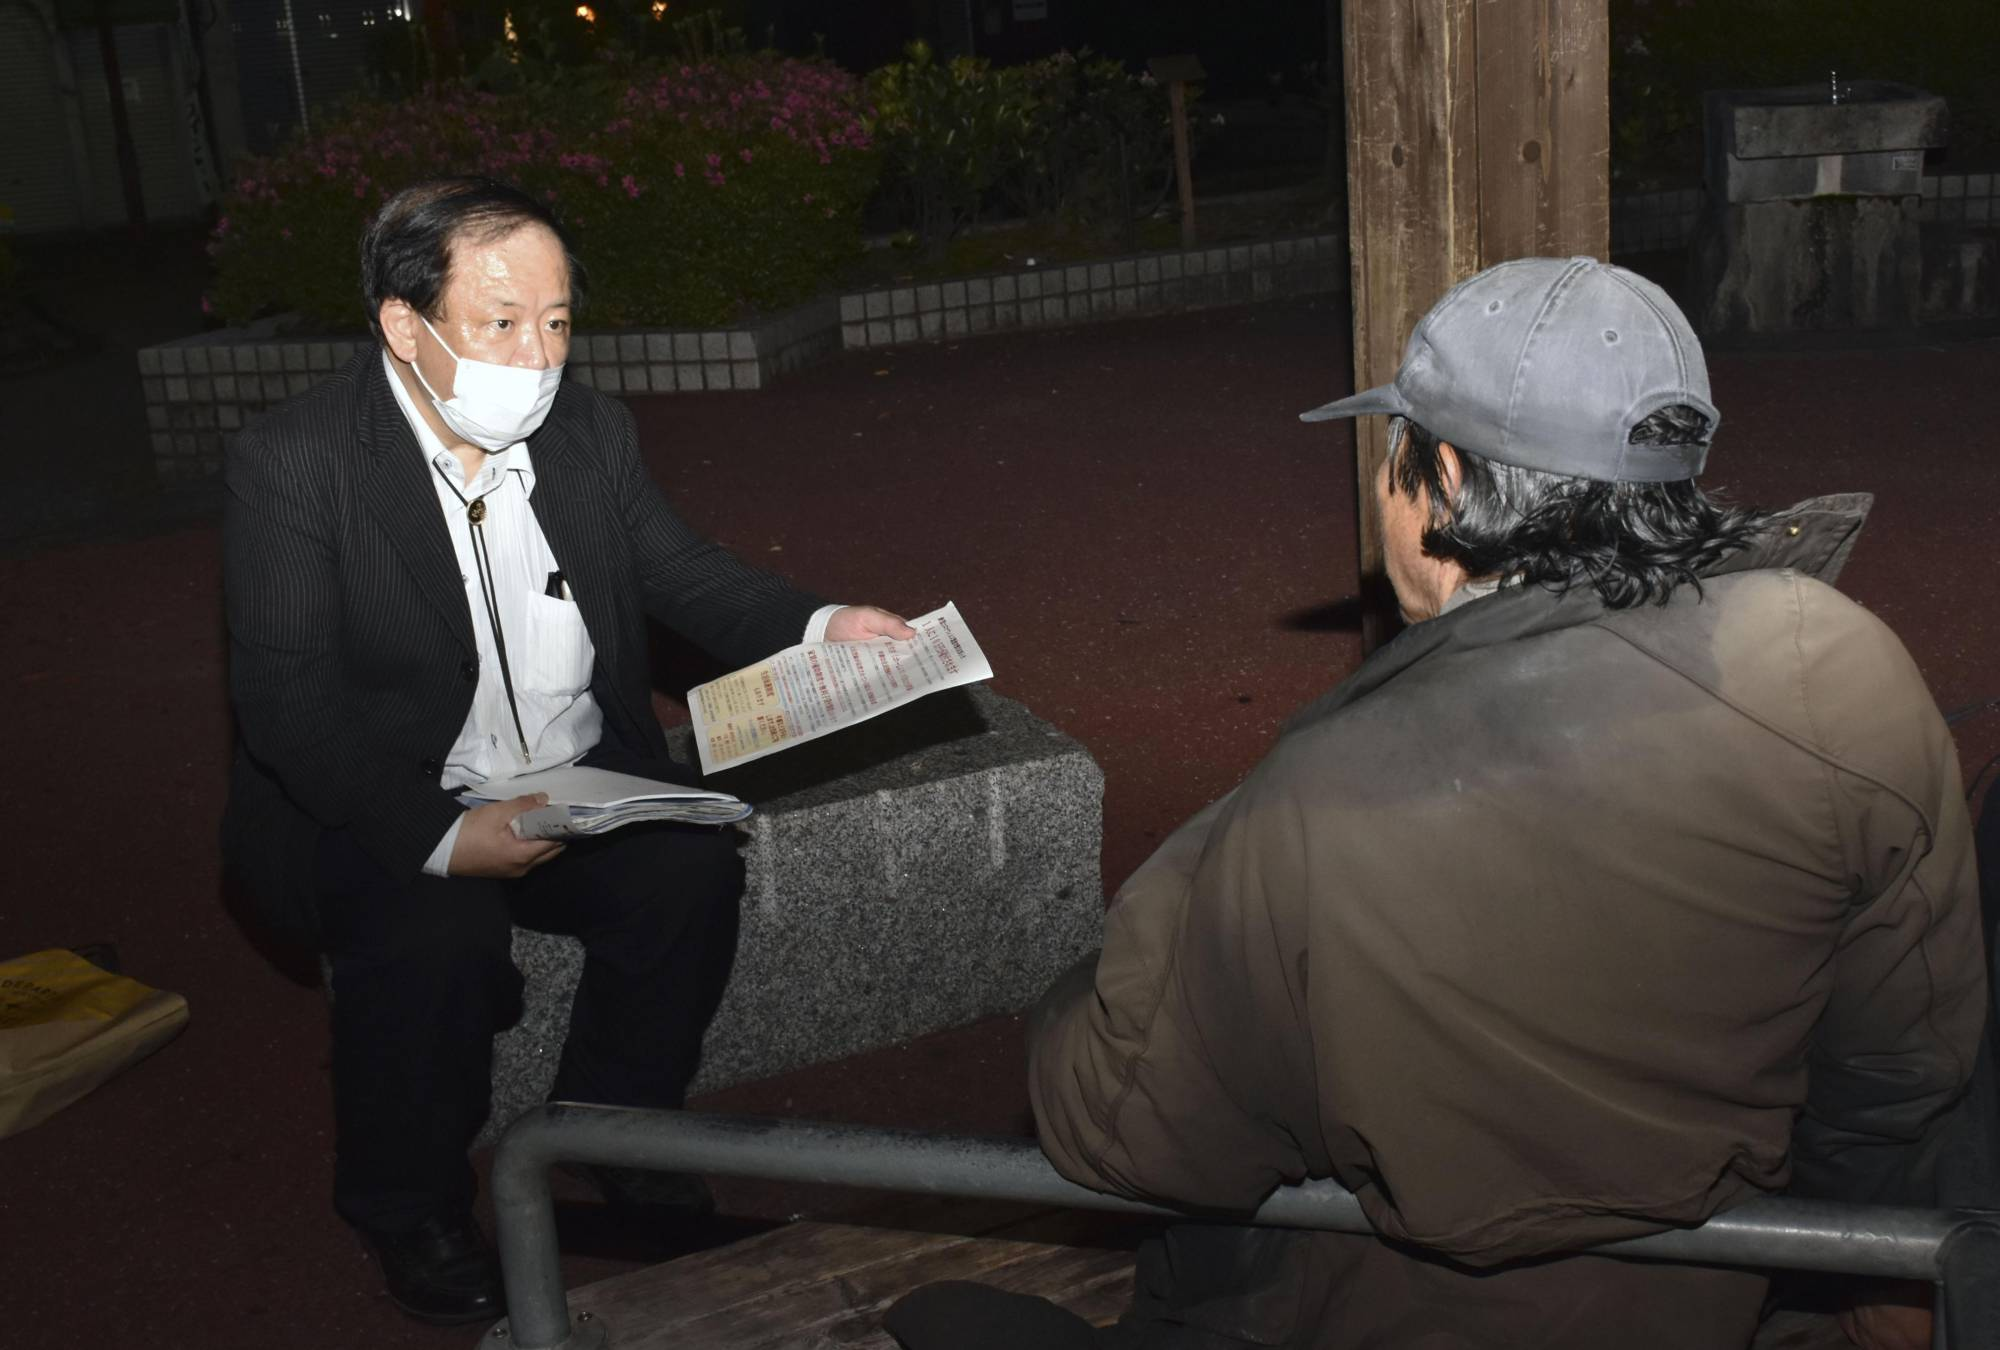 Kiyomu Tanaka, a professor at the University of Kochi versed in community-based welfare, hands a flyer to a homeless person that explains the government's cash handout program in the city of Kochi on May 11. | KYODO